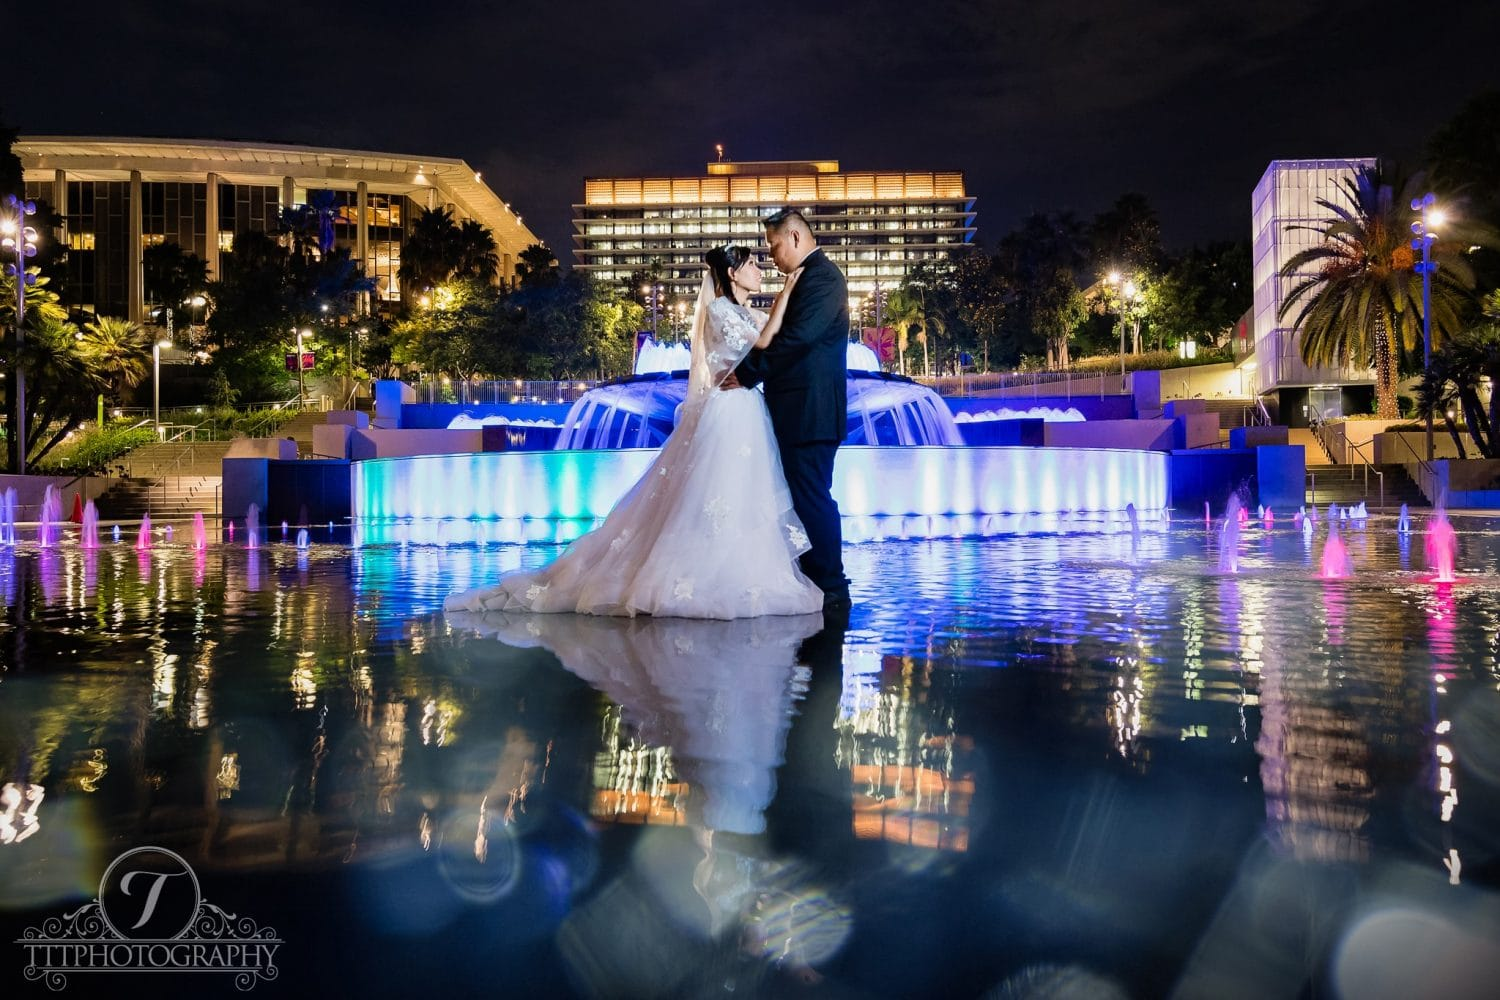 How To Prepare For Engagement Photoshoot Pre Wedding Photoshoot